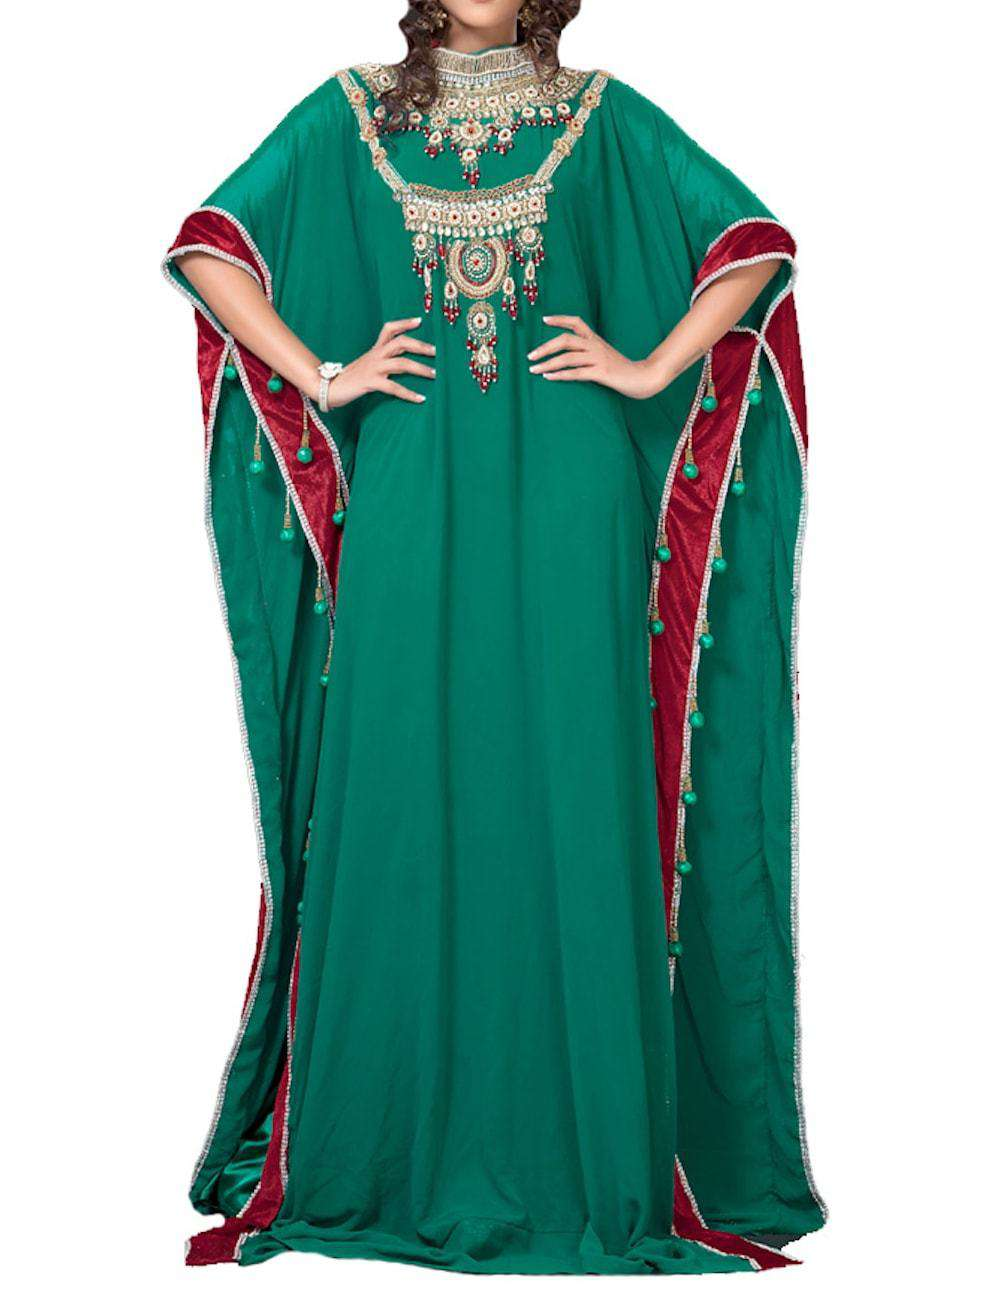 Graceful Bottle Green Color Designer Arabic Kaftan